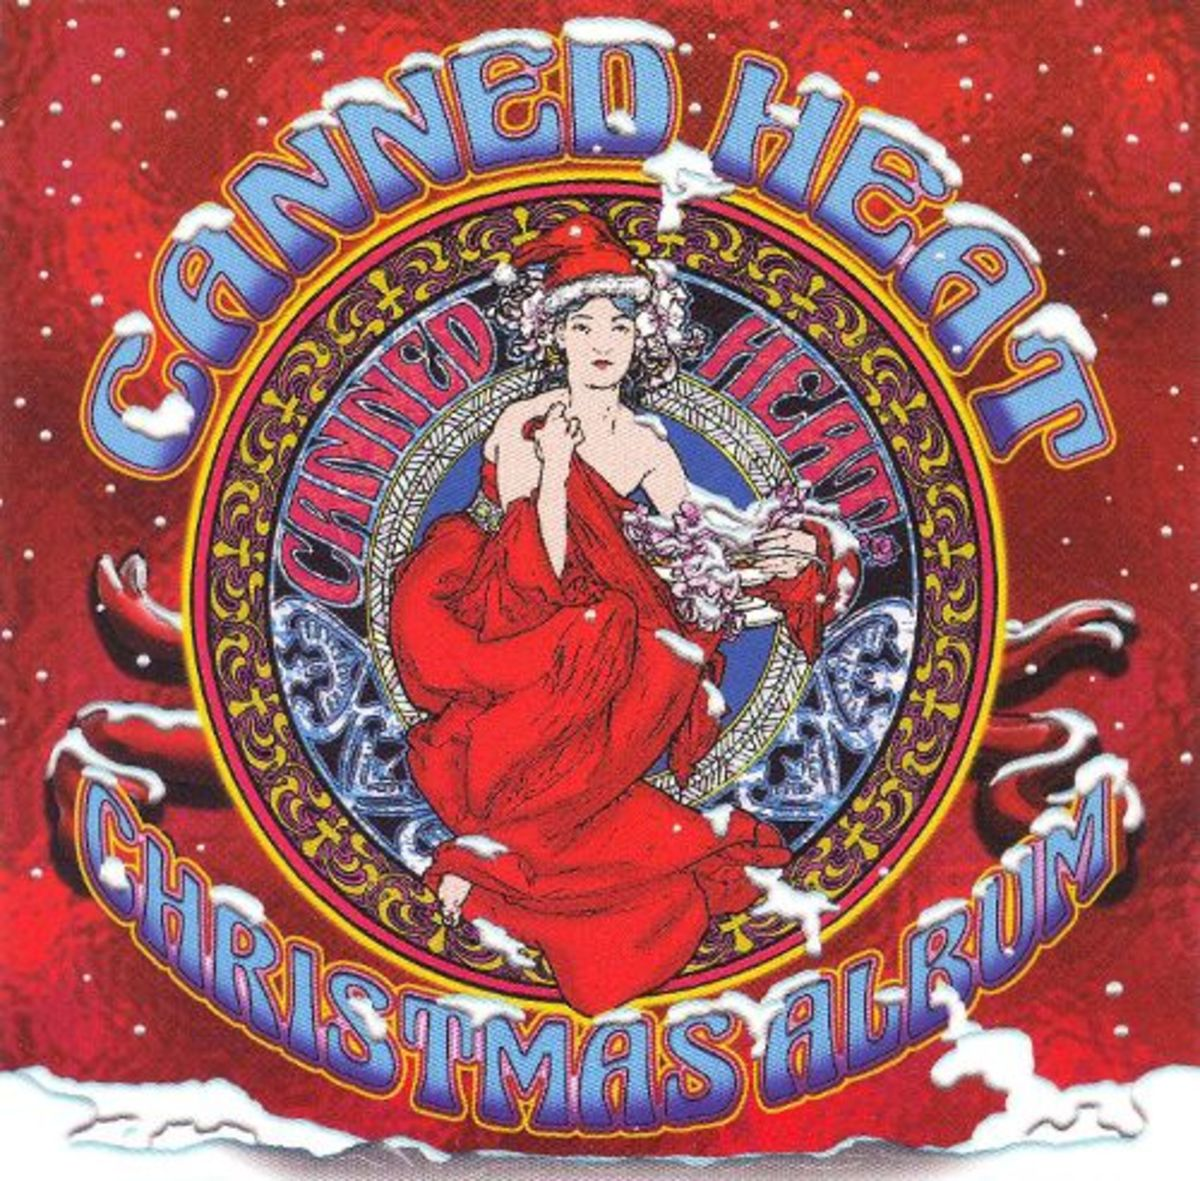 1968 Canned Heat Christmas Album